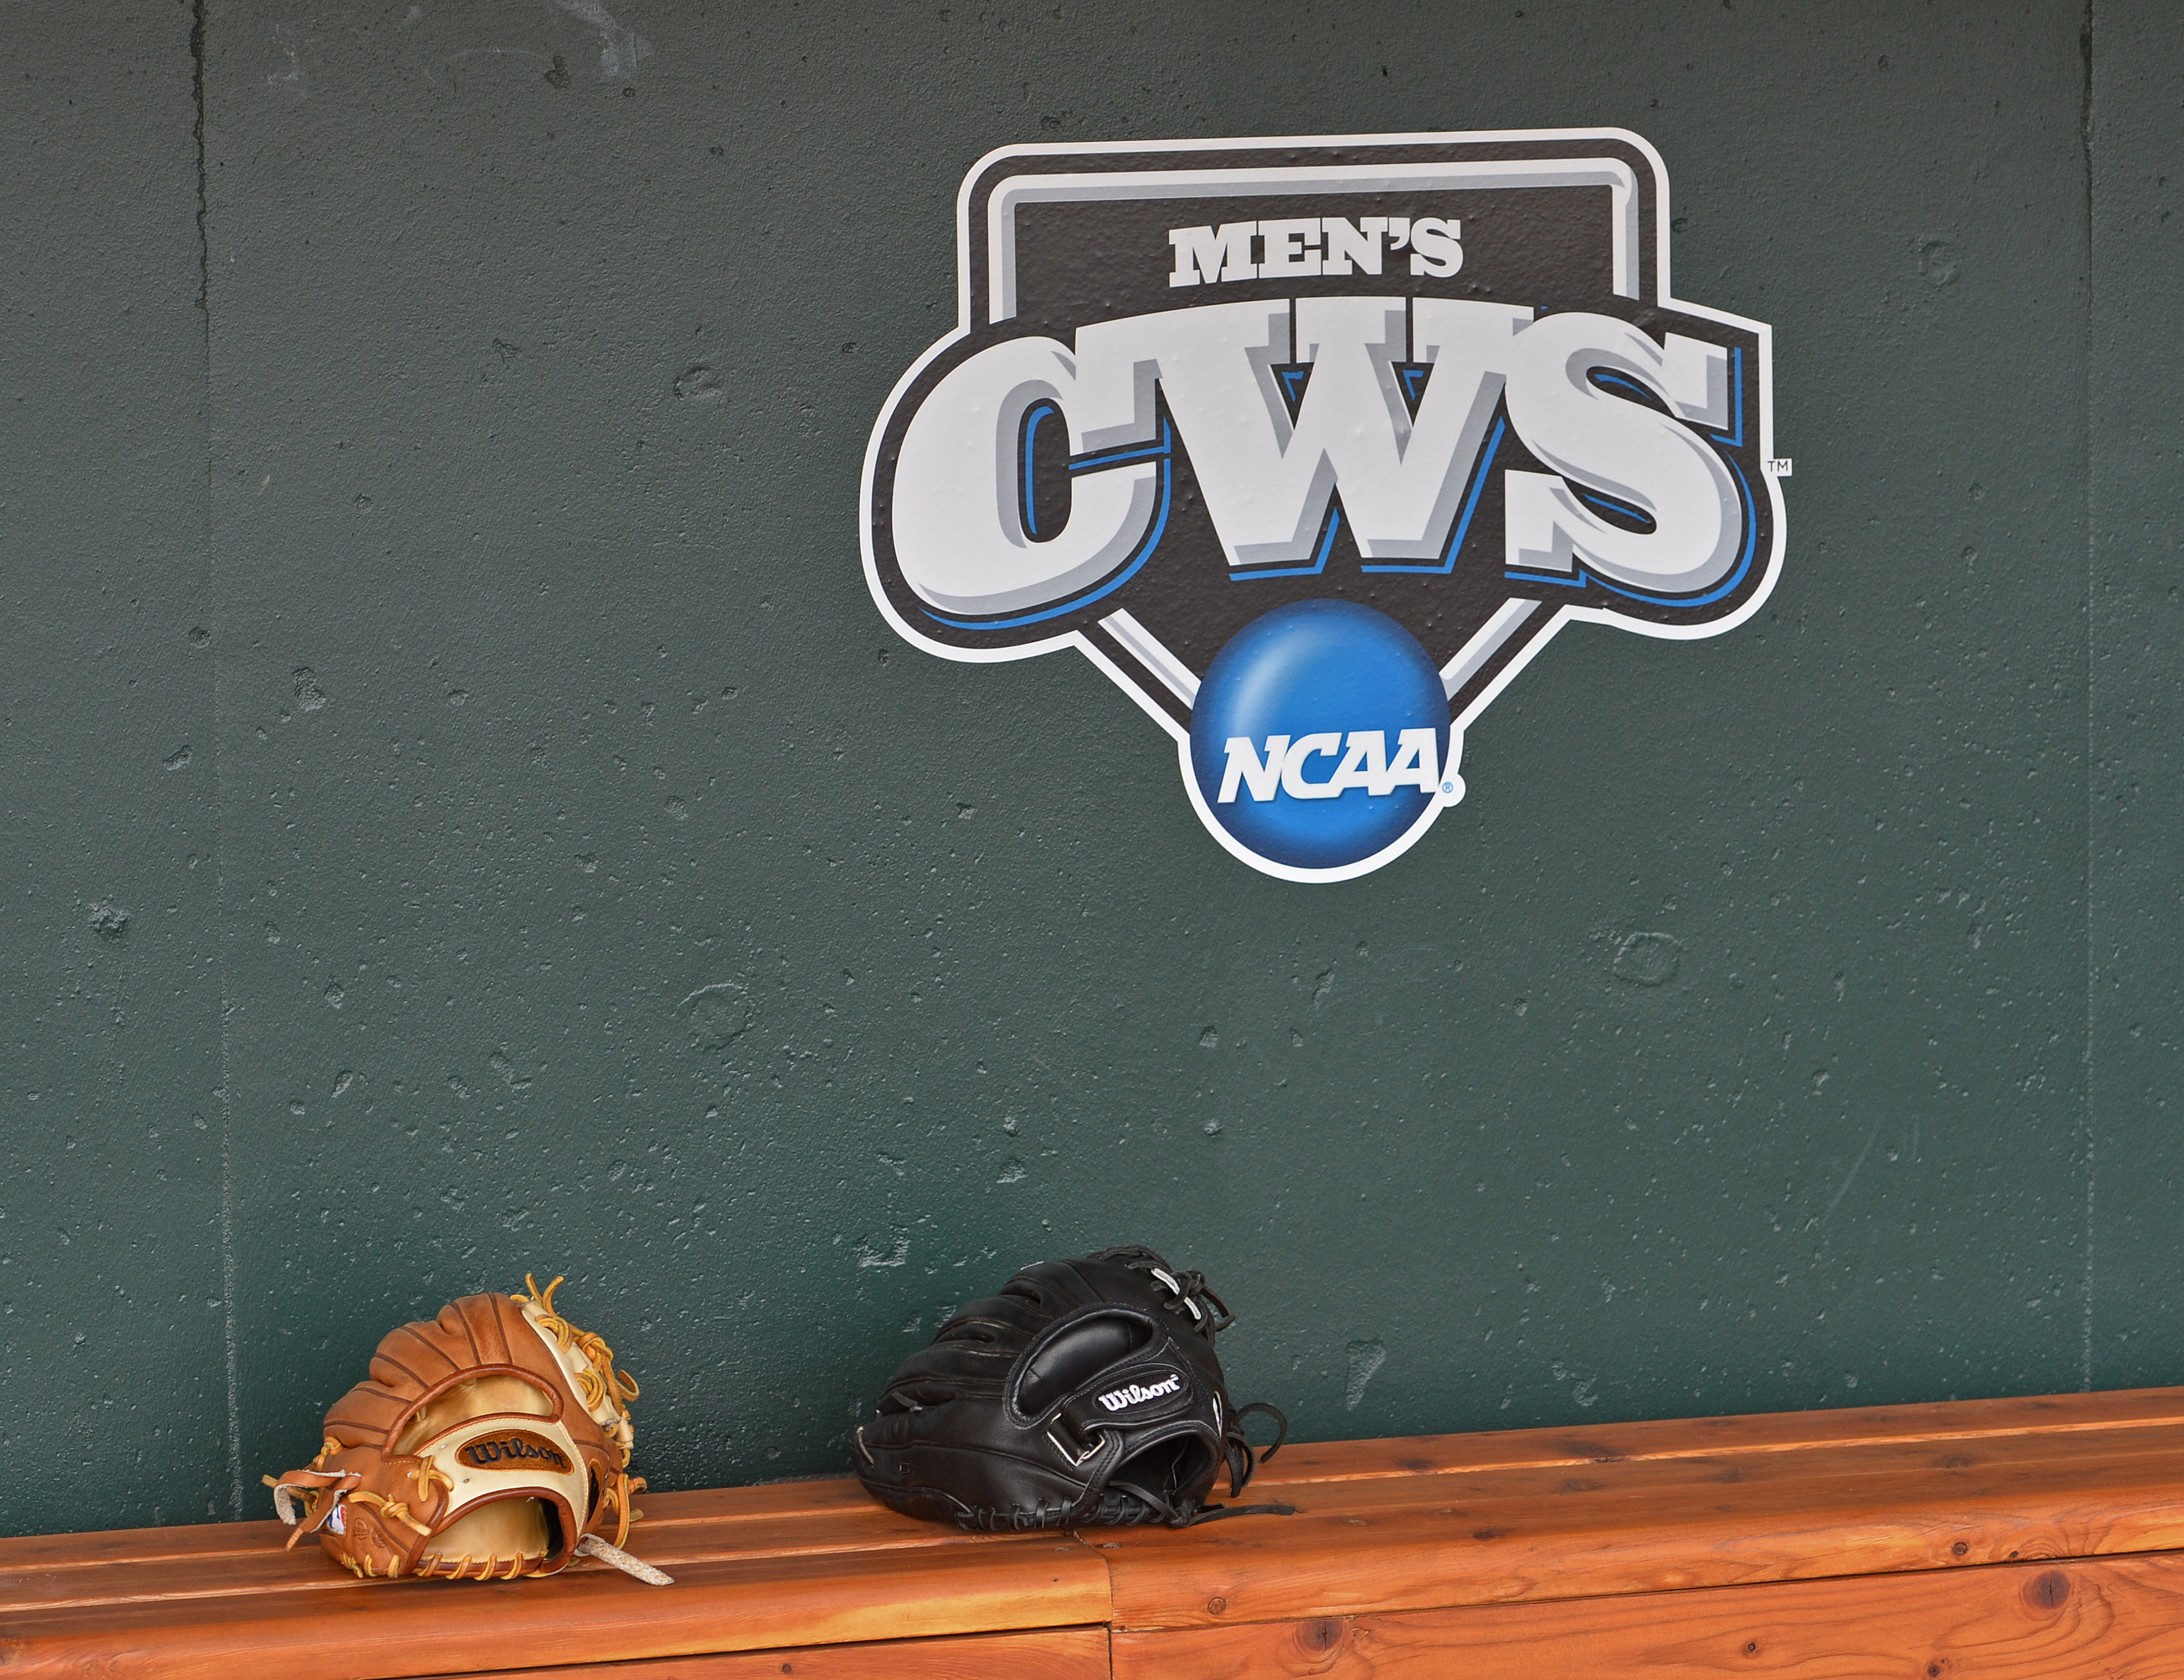 The Road to Omaha begins...